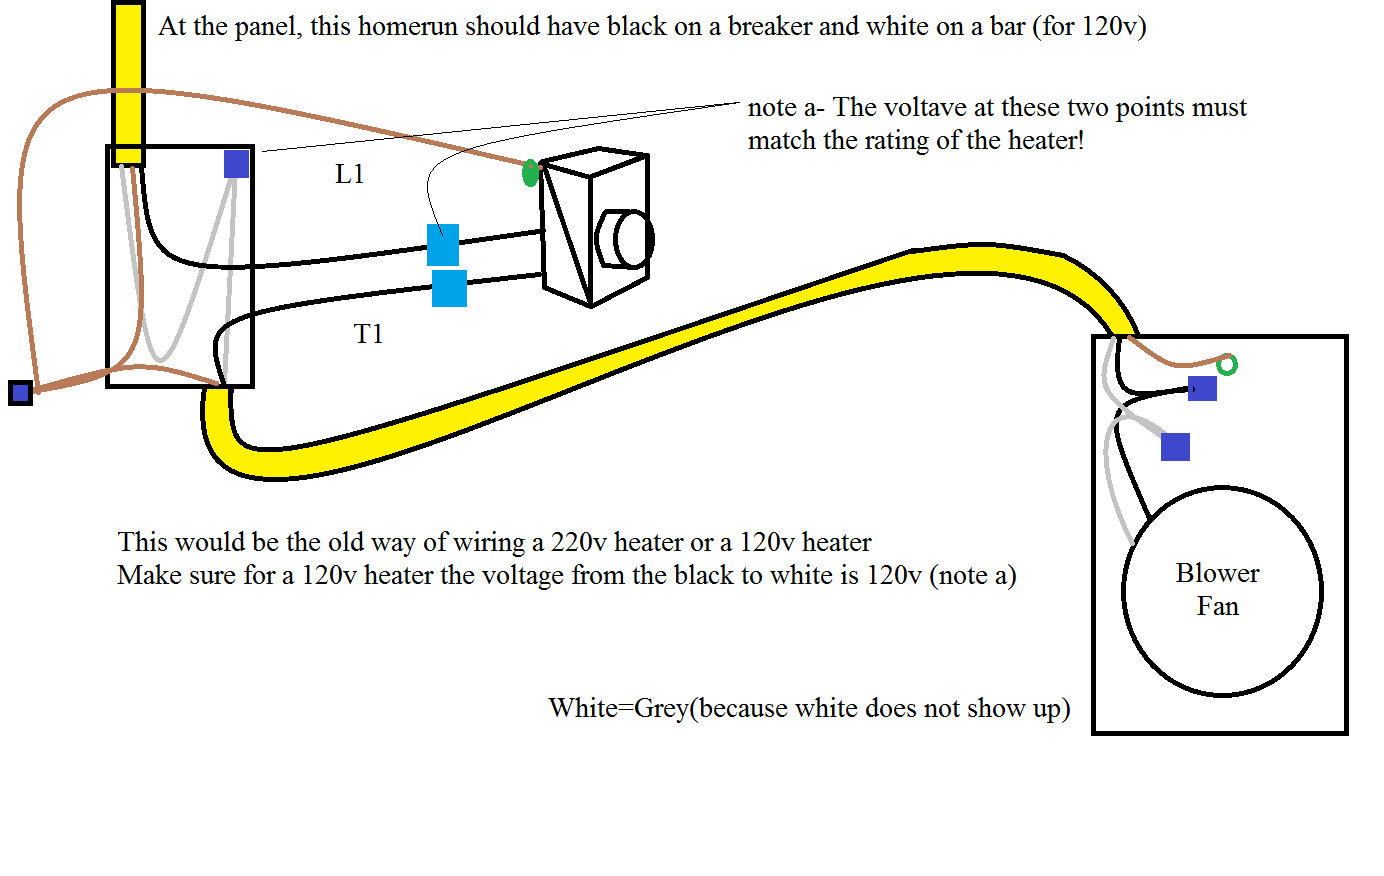 Wiring A 220V Switch Diagram from 3.bp.blogspot.com